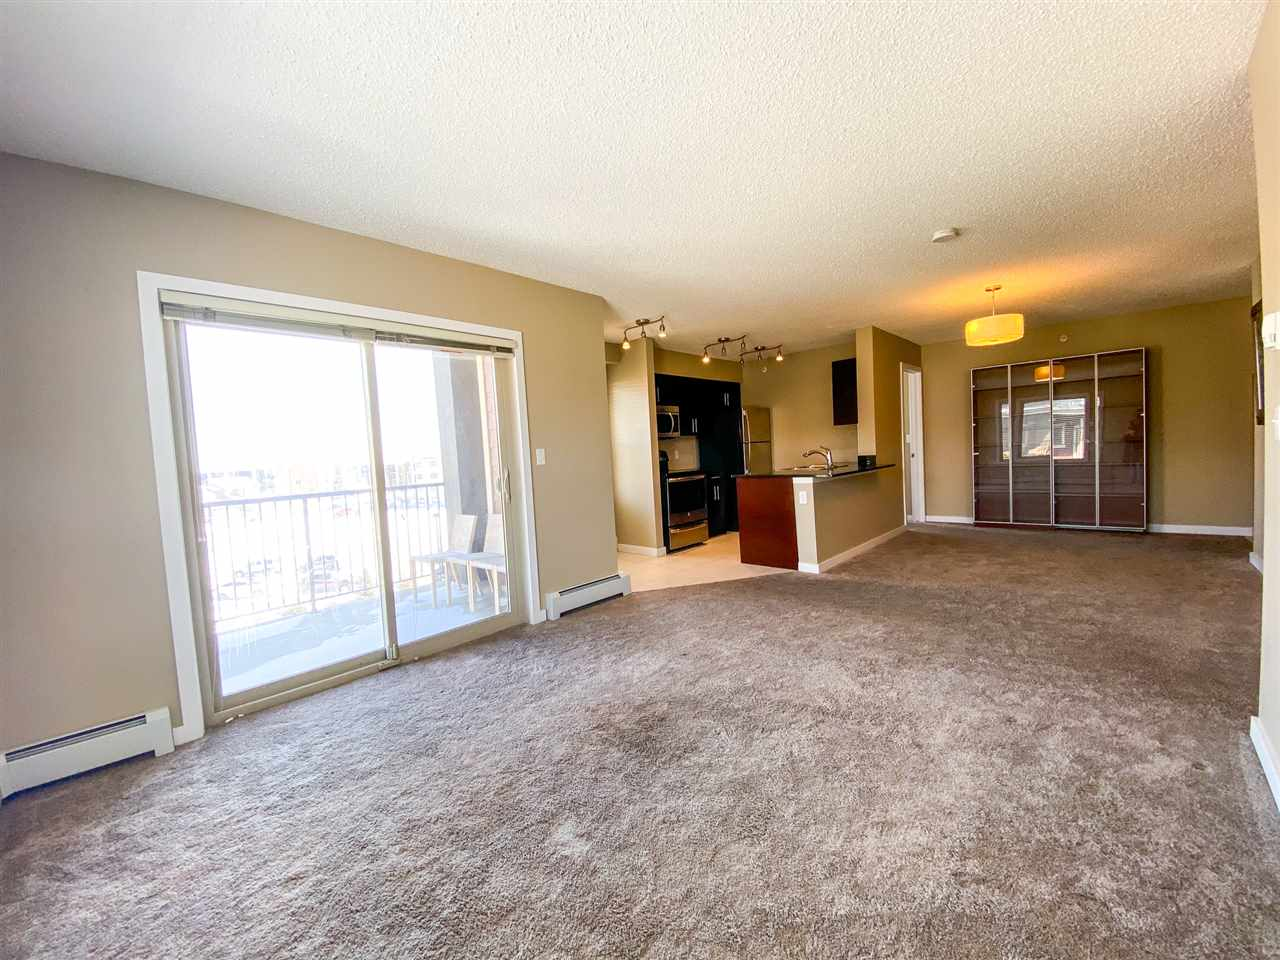 FEATURED LISTING: 401 - 12035 22 Avenue Edmonton